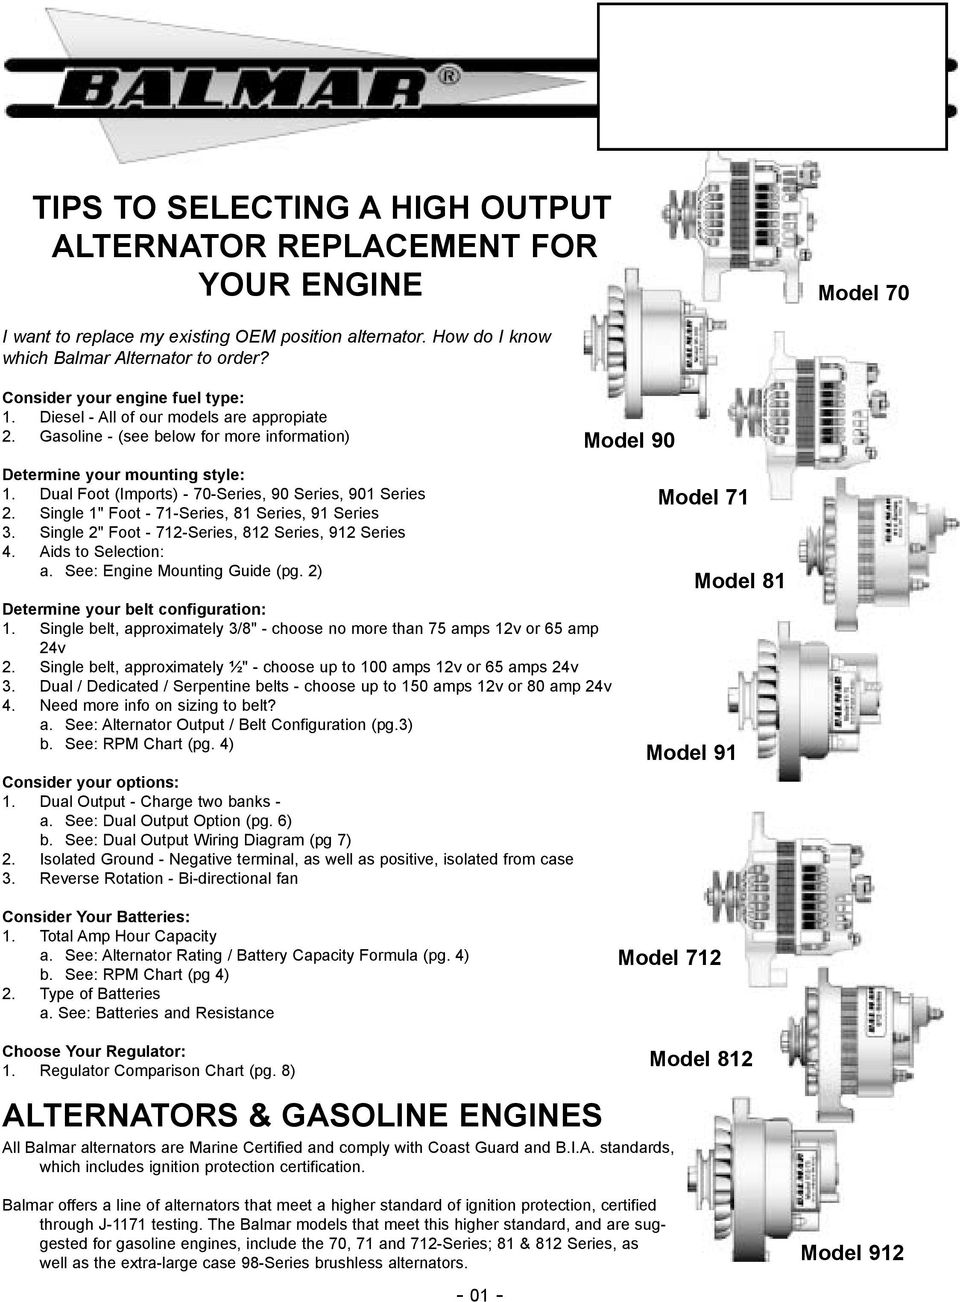 how to tell what amp your alternator is